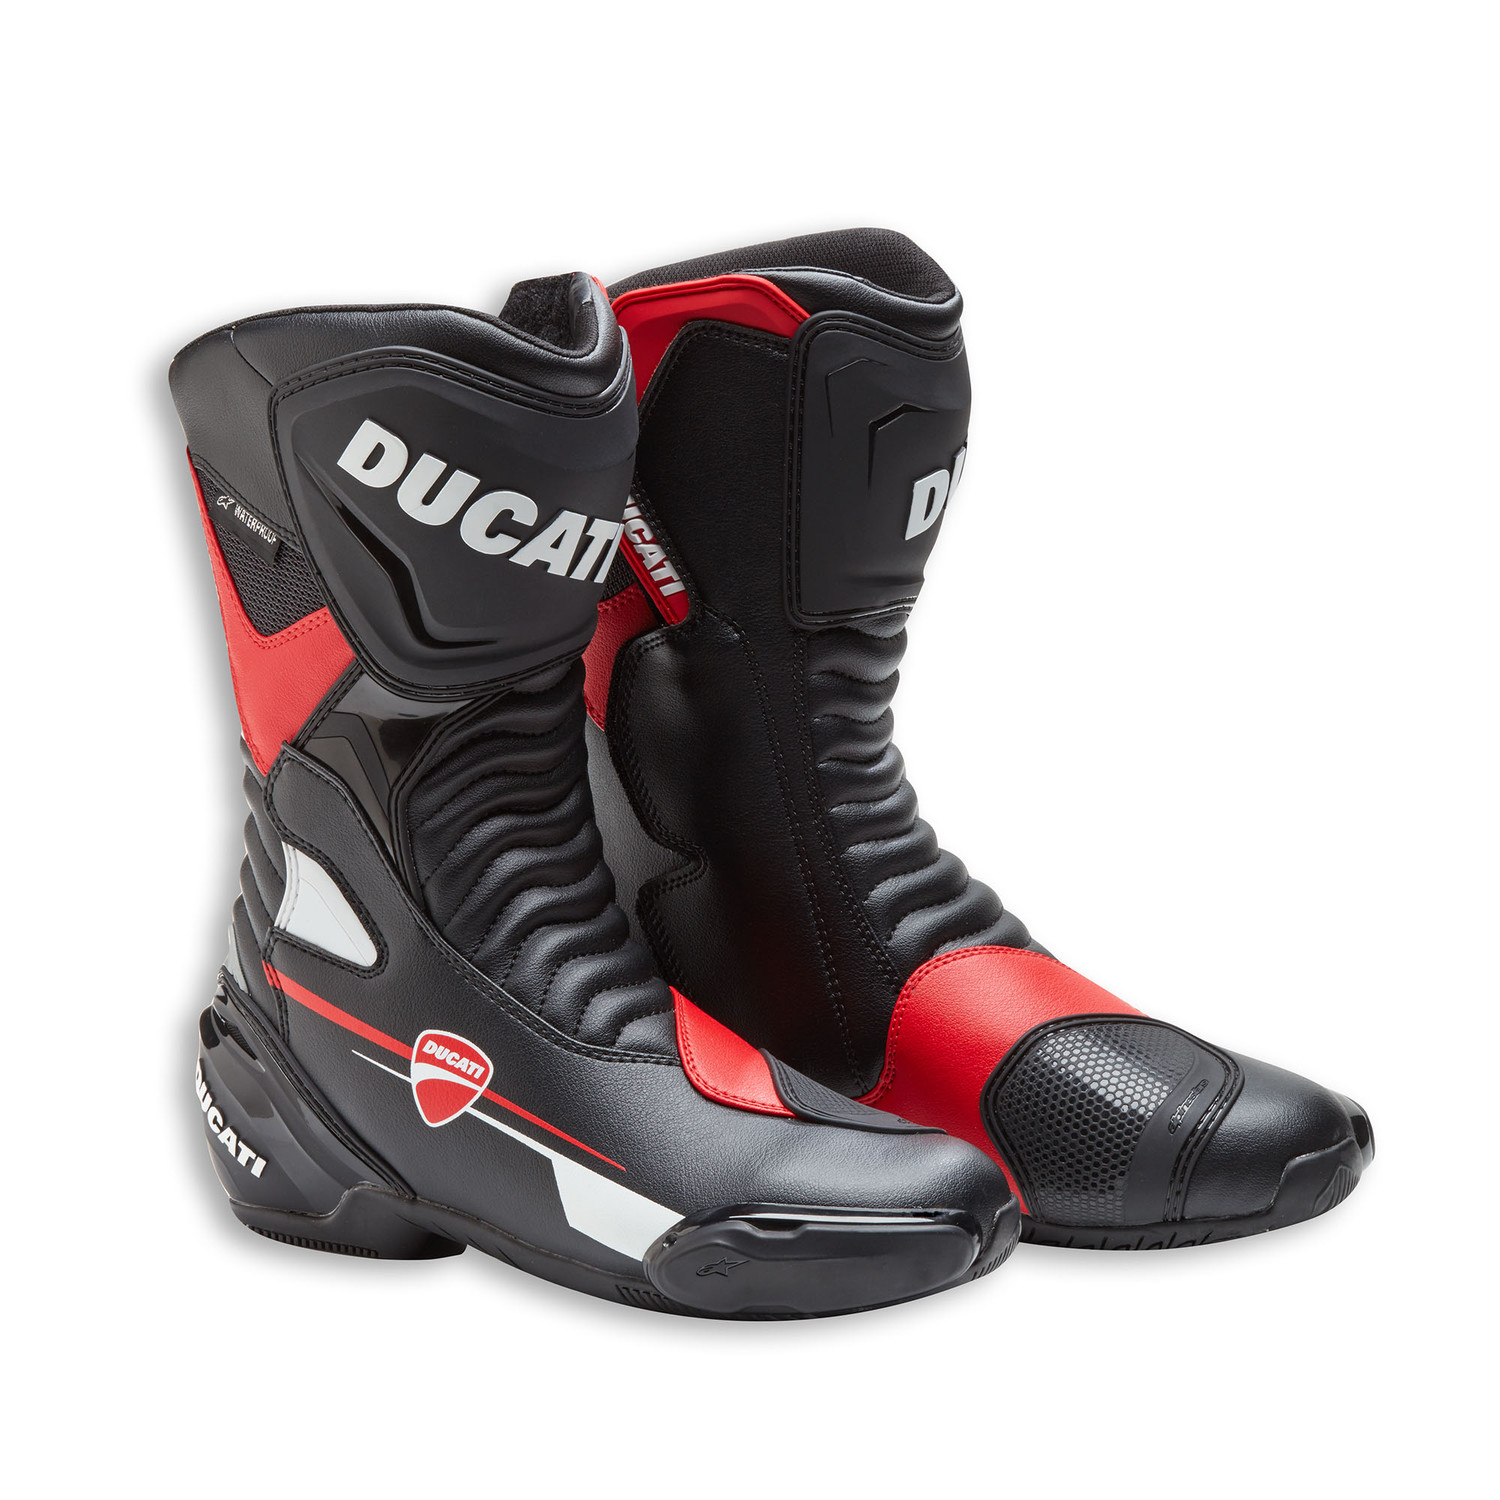 Speed Evo C1 Wp Sport-touring boots